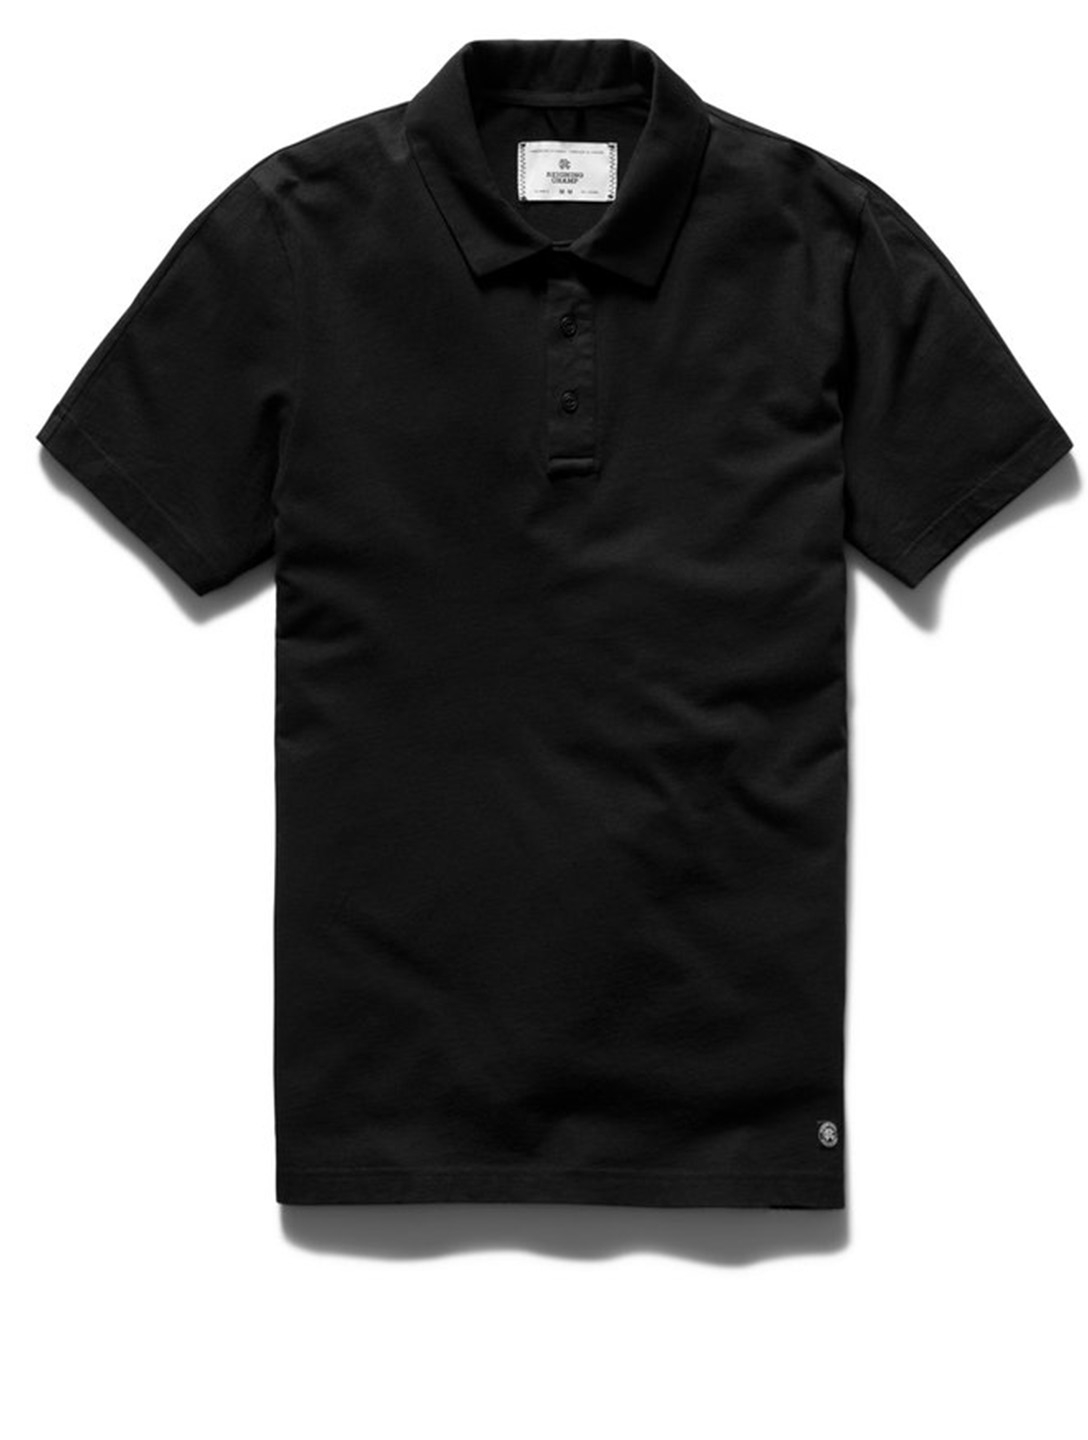 REIGNING CHAMP Pima Cotton Jersey Polo Shirt Men's Black